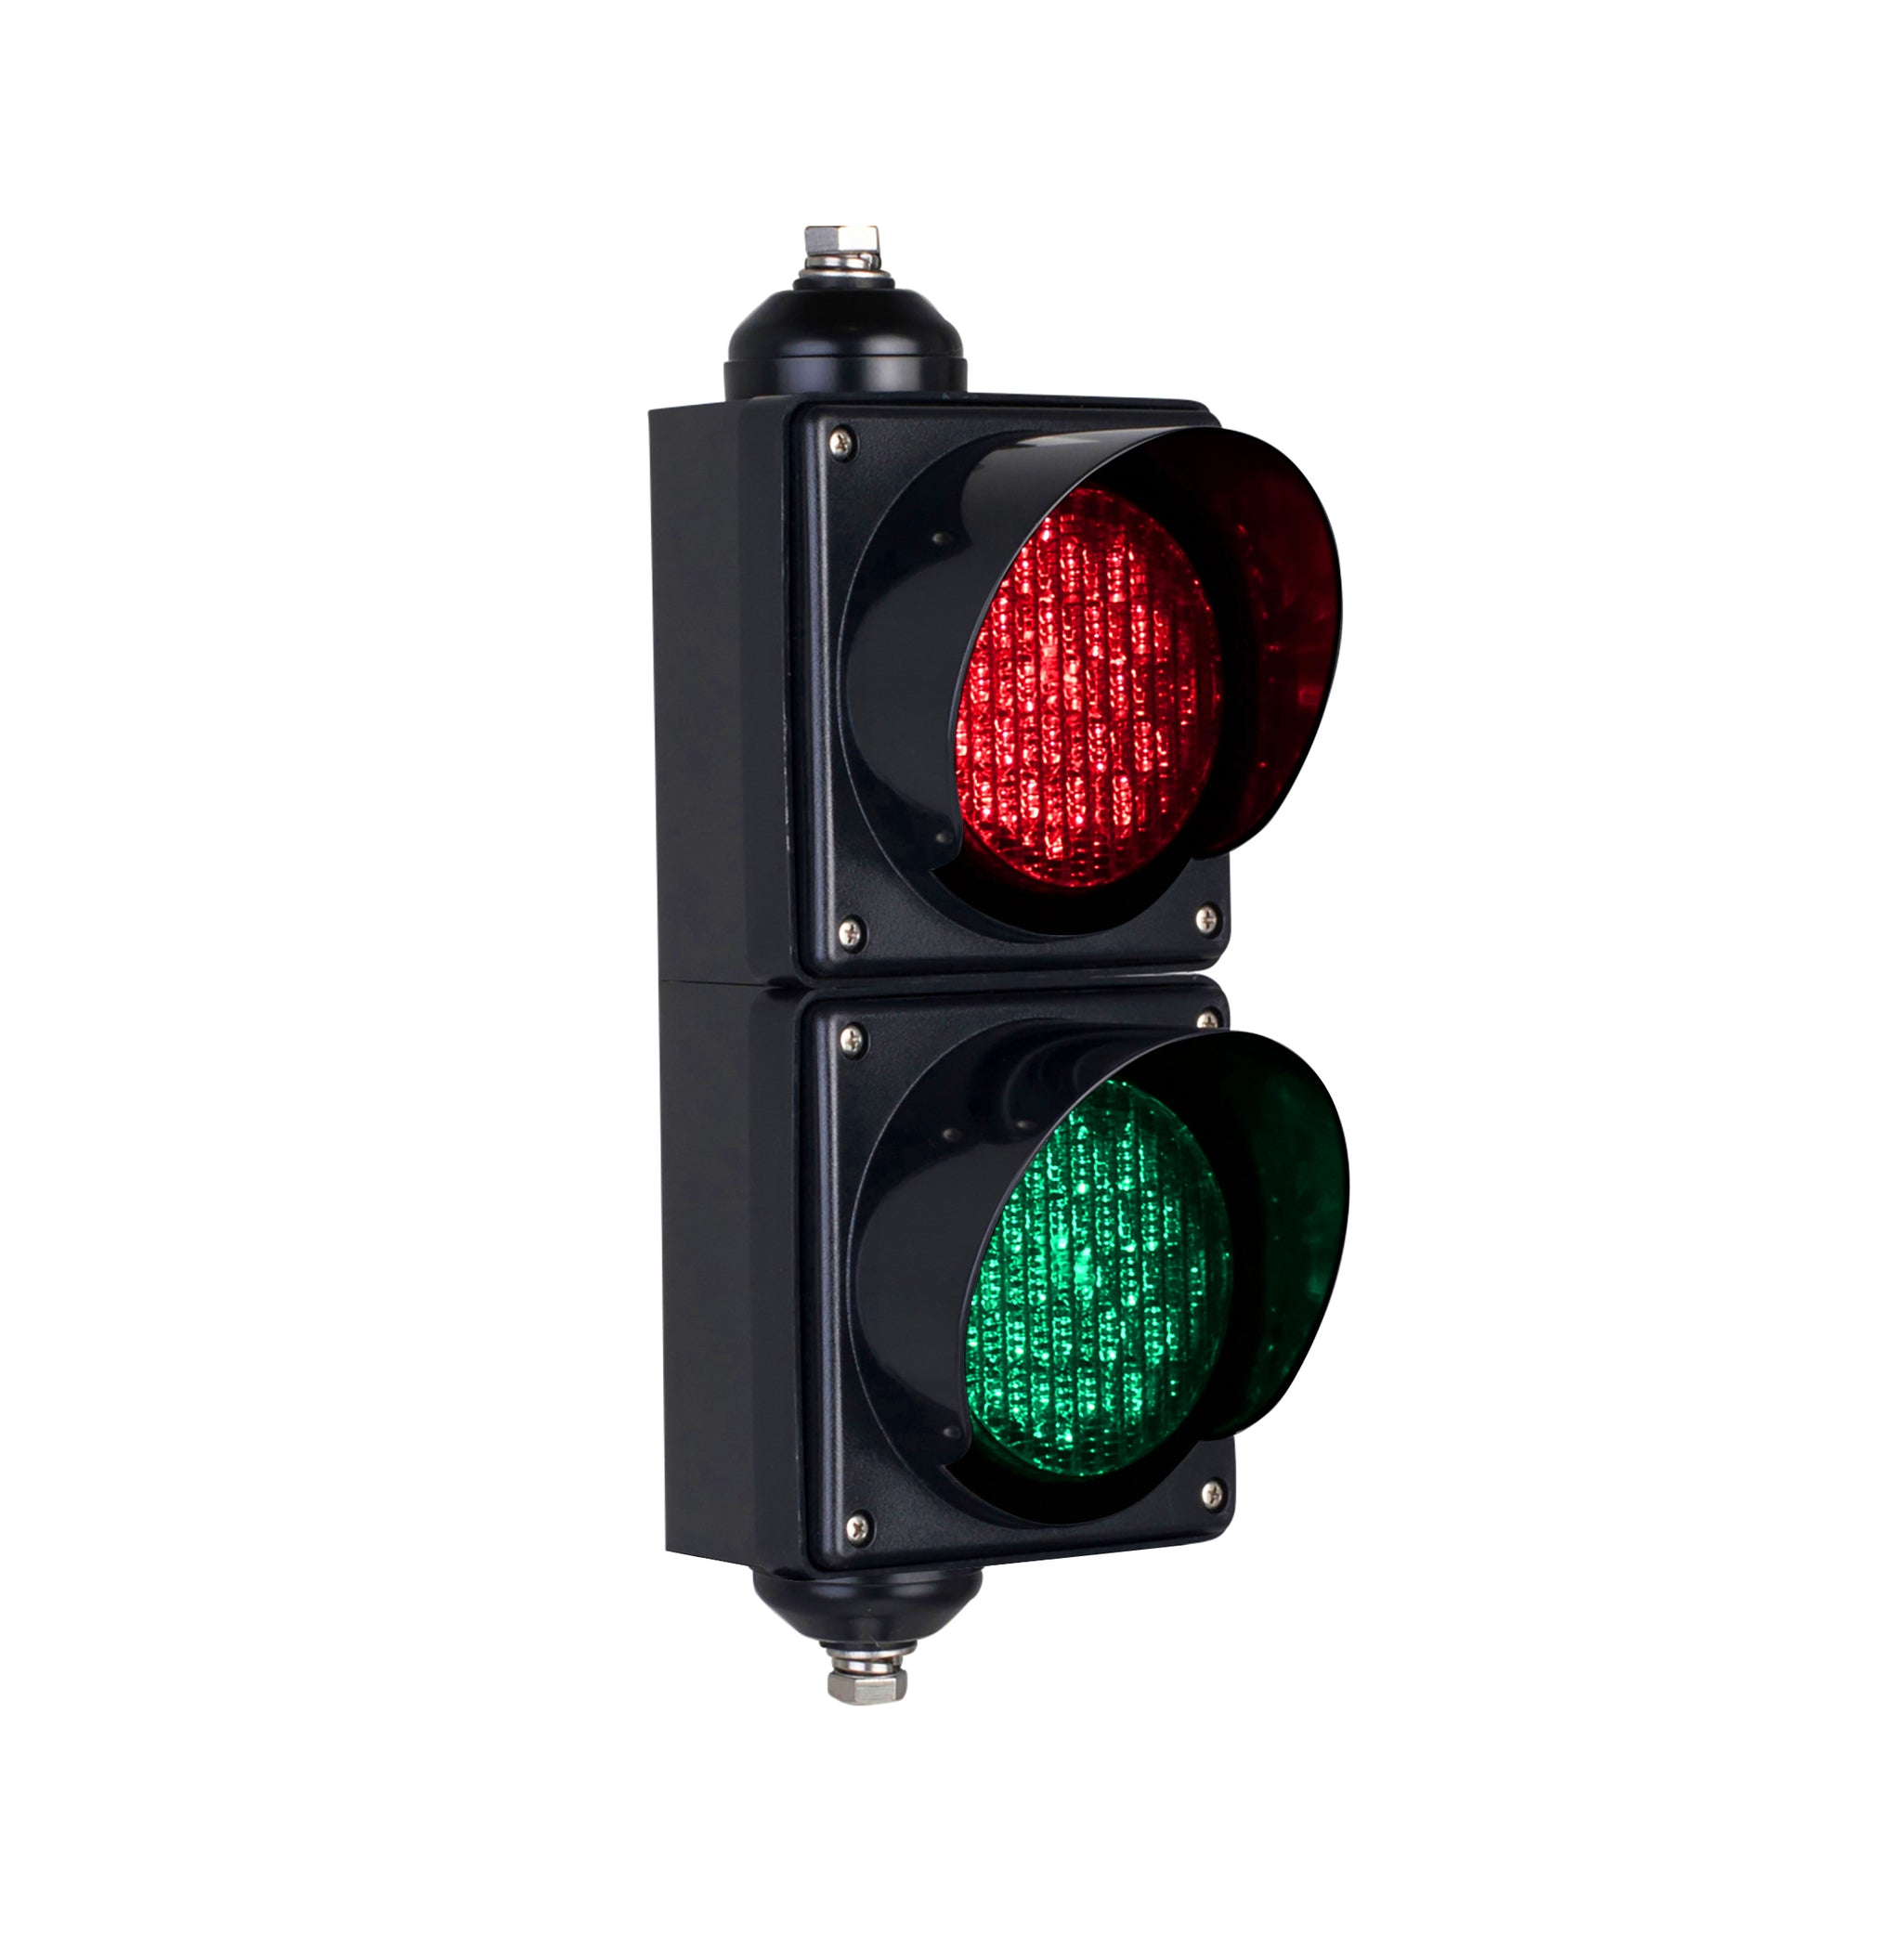 BNR BNR 2 Aspect 100mm LED Traffic Lights 12-24VDC or 85-265VAC - BNR Industrial